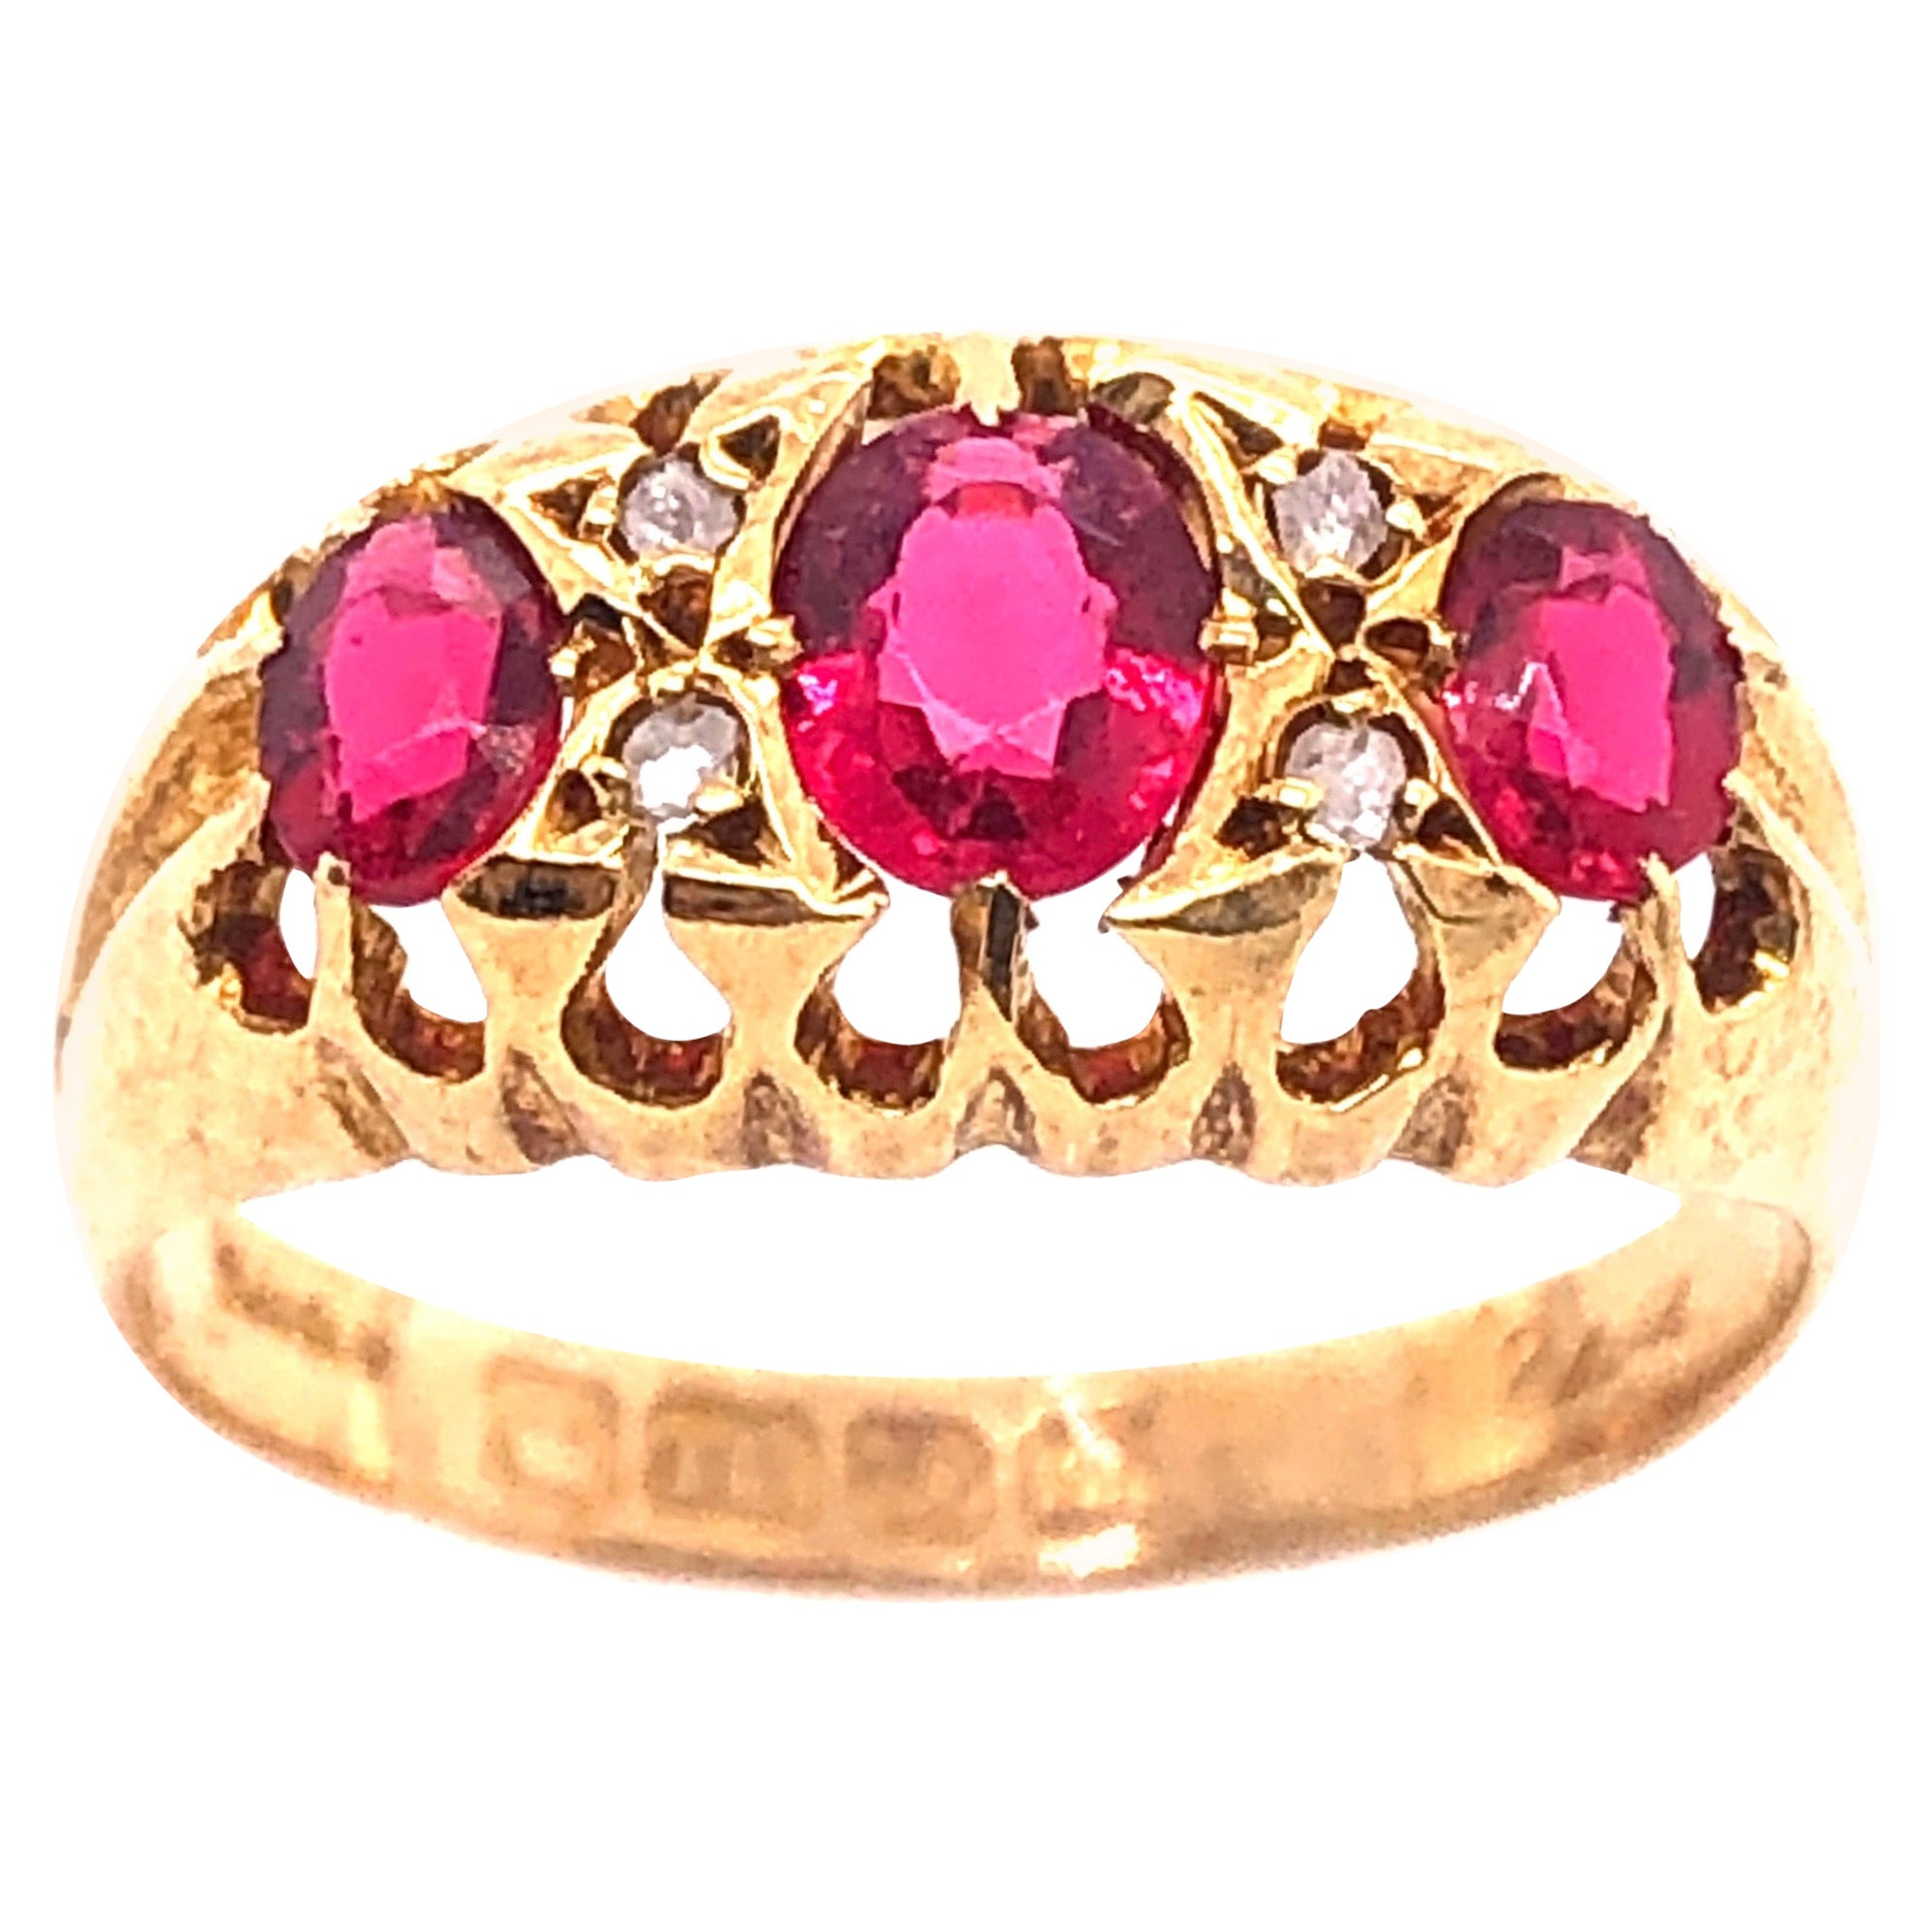 18 Karat Yellow Gold Three-Stone Ruby Ring Band with Diamond Accents